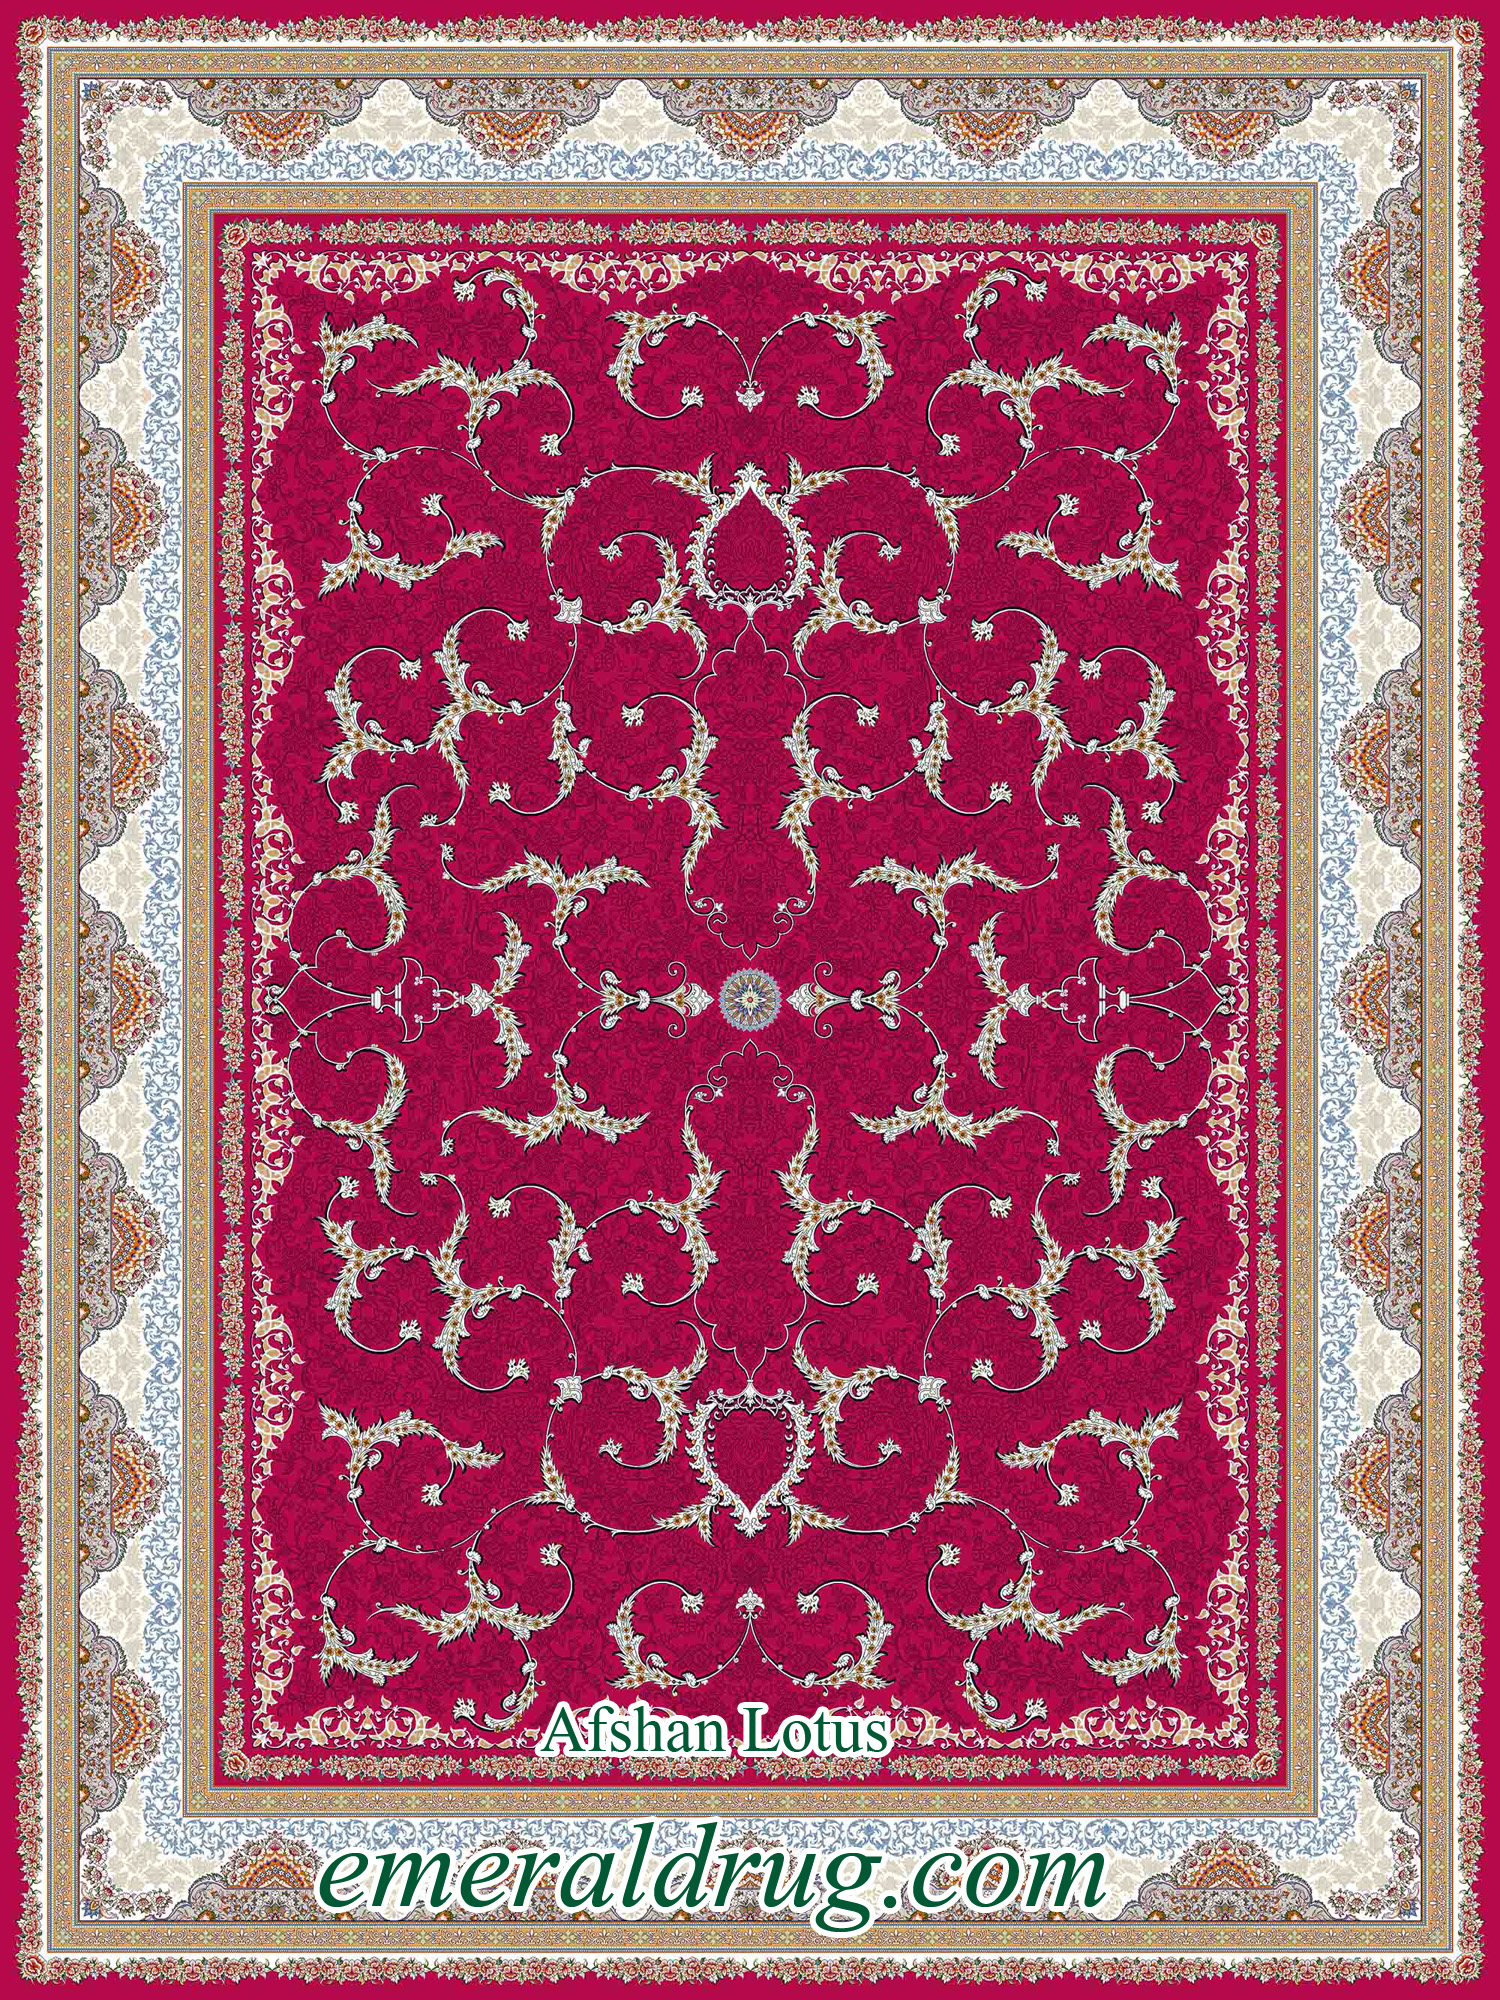 1200Reed-Afshan Lotus-Red